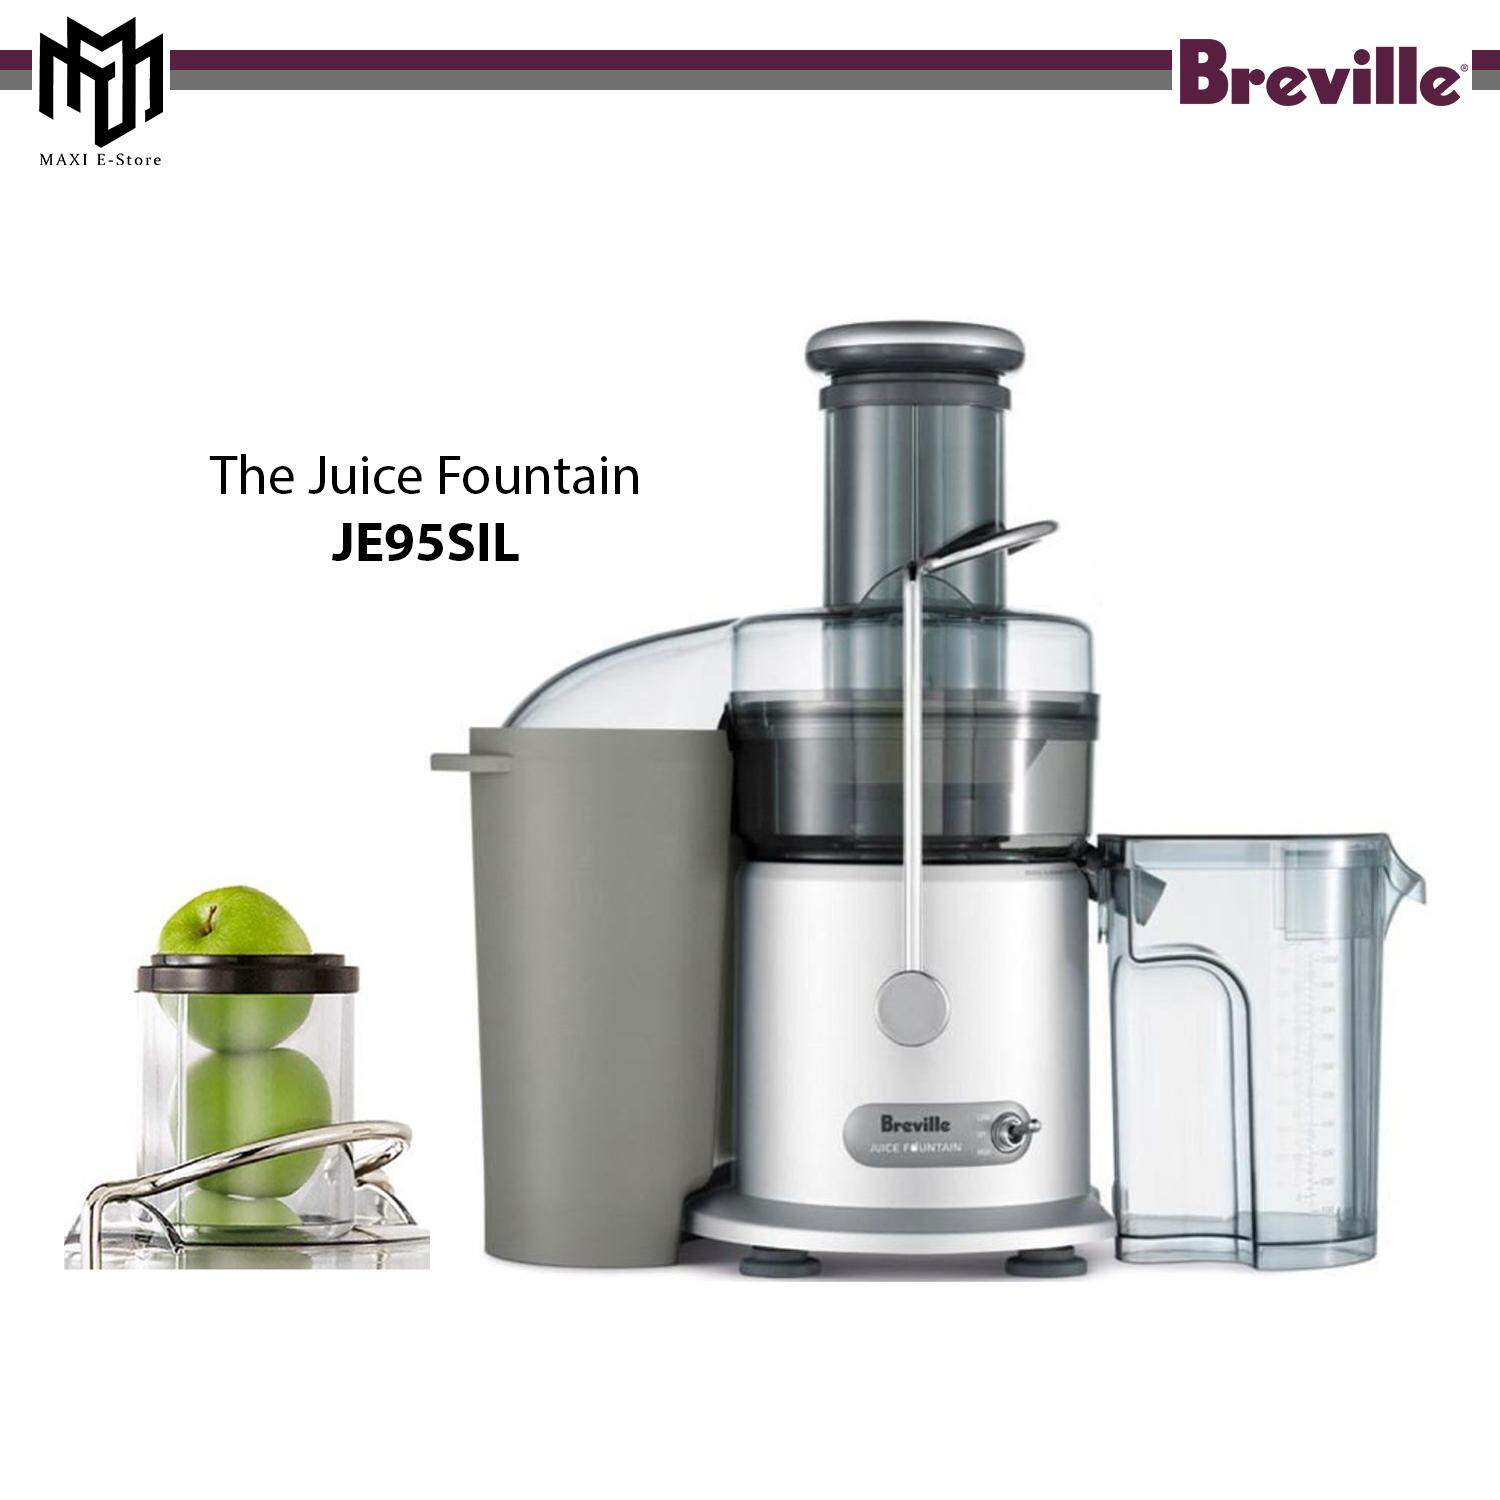 Breville JE95 Juice Fountain Large Feed Chute Juicer 800W